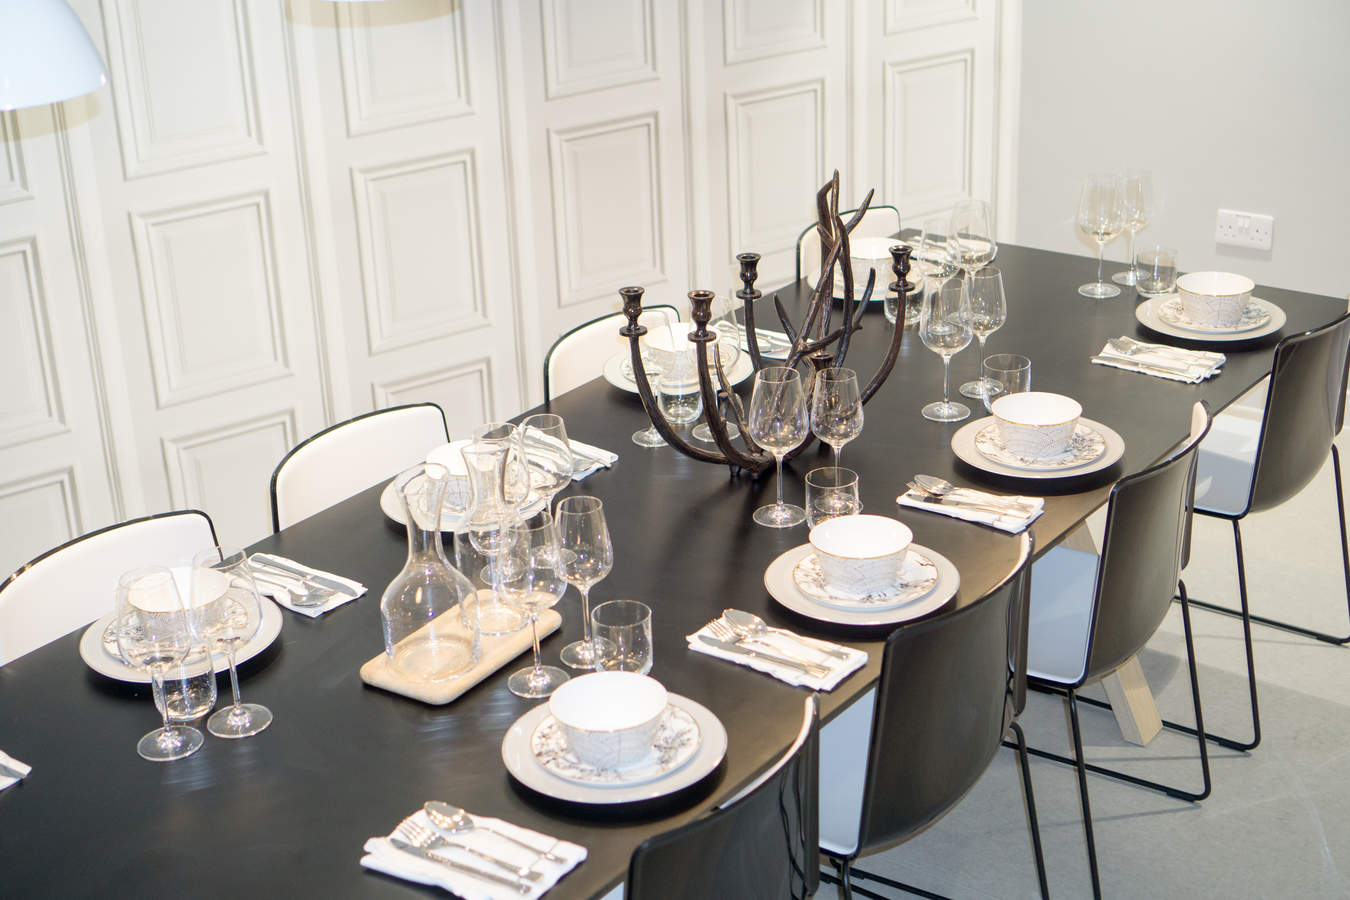 6._residents_private_dining_room